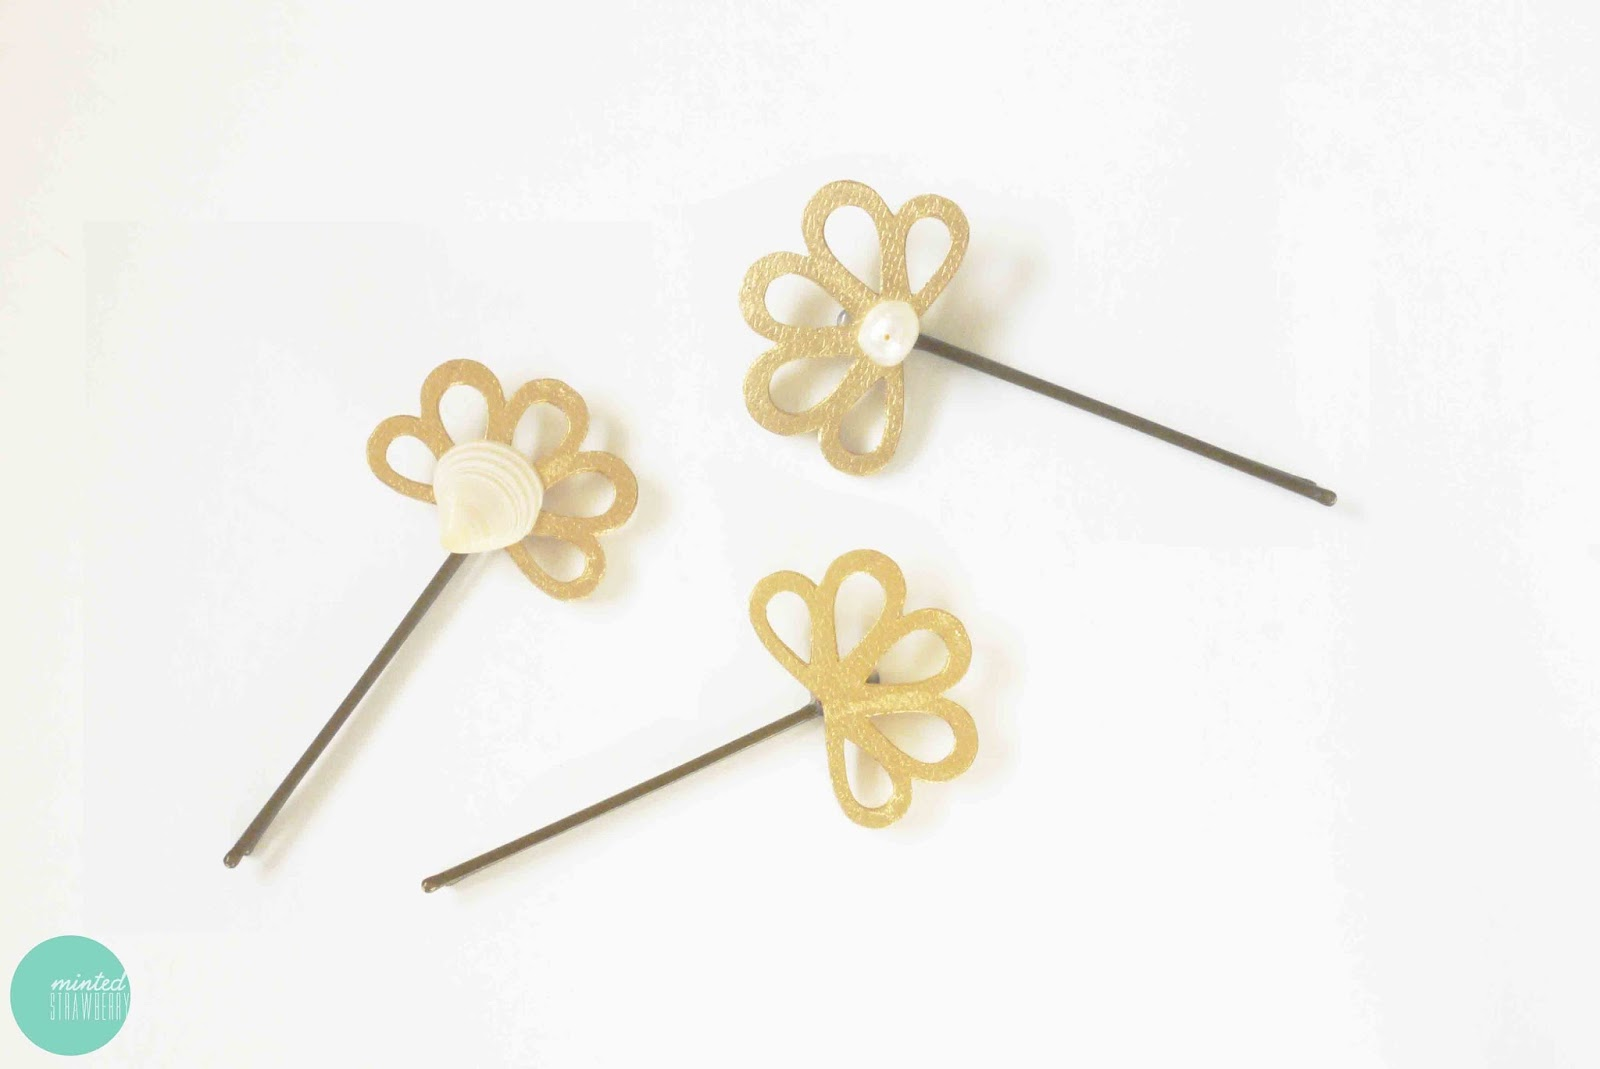 diy: paper earrings/hairpin - minted strawberry